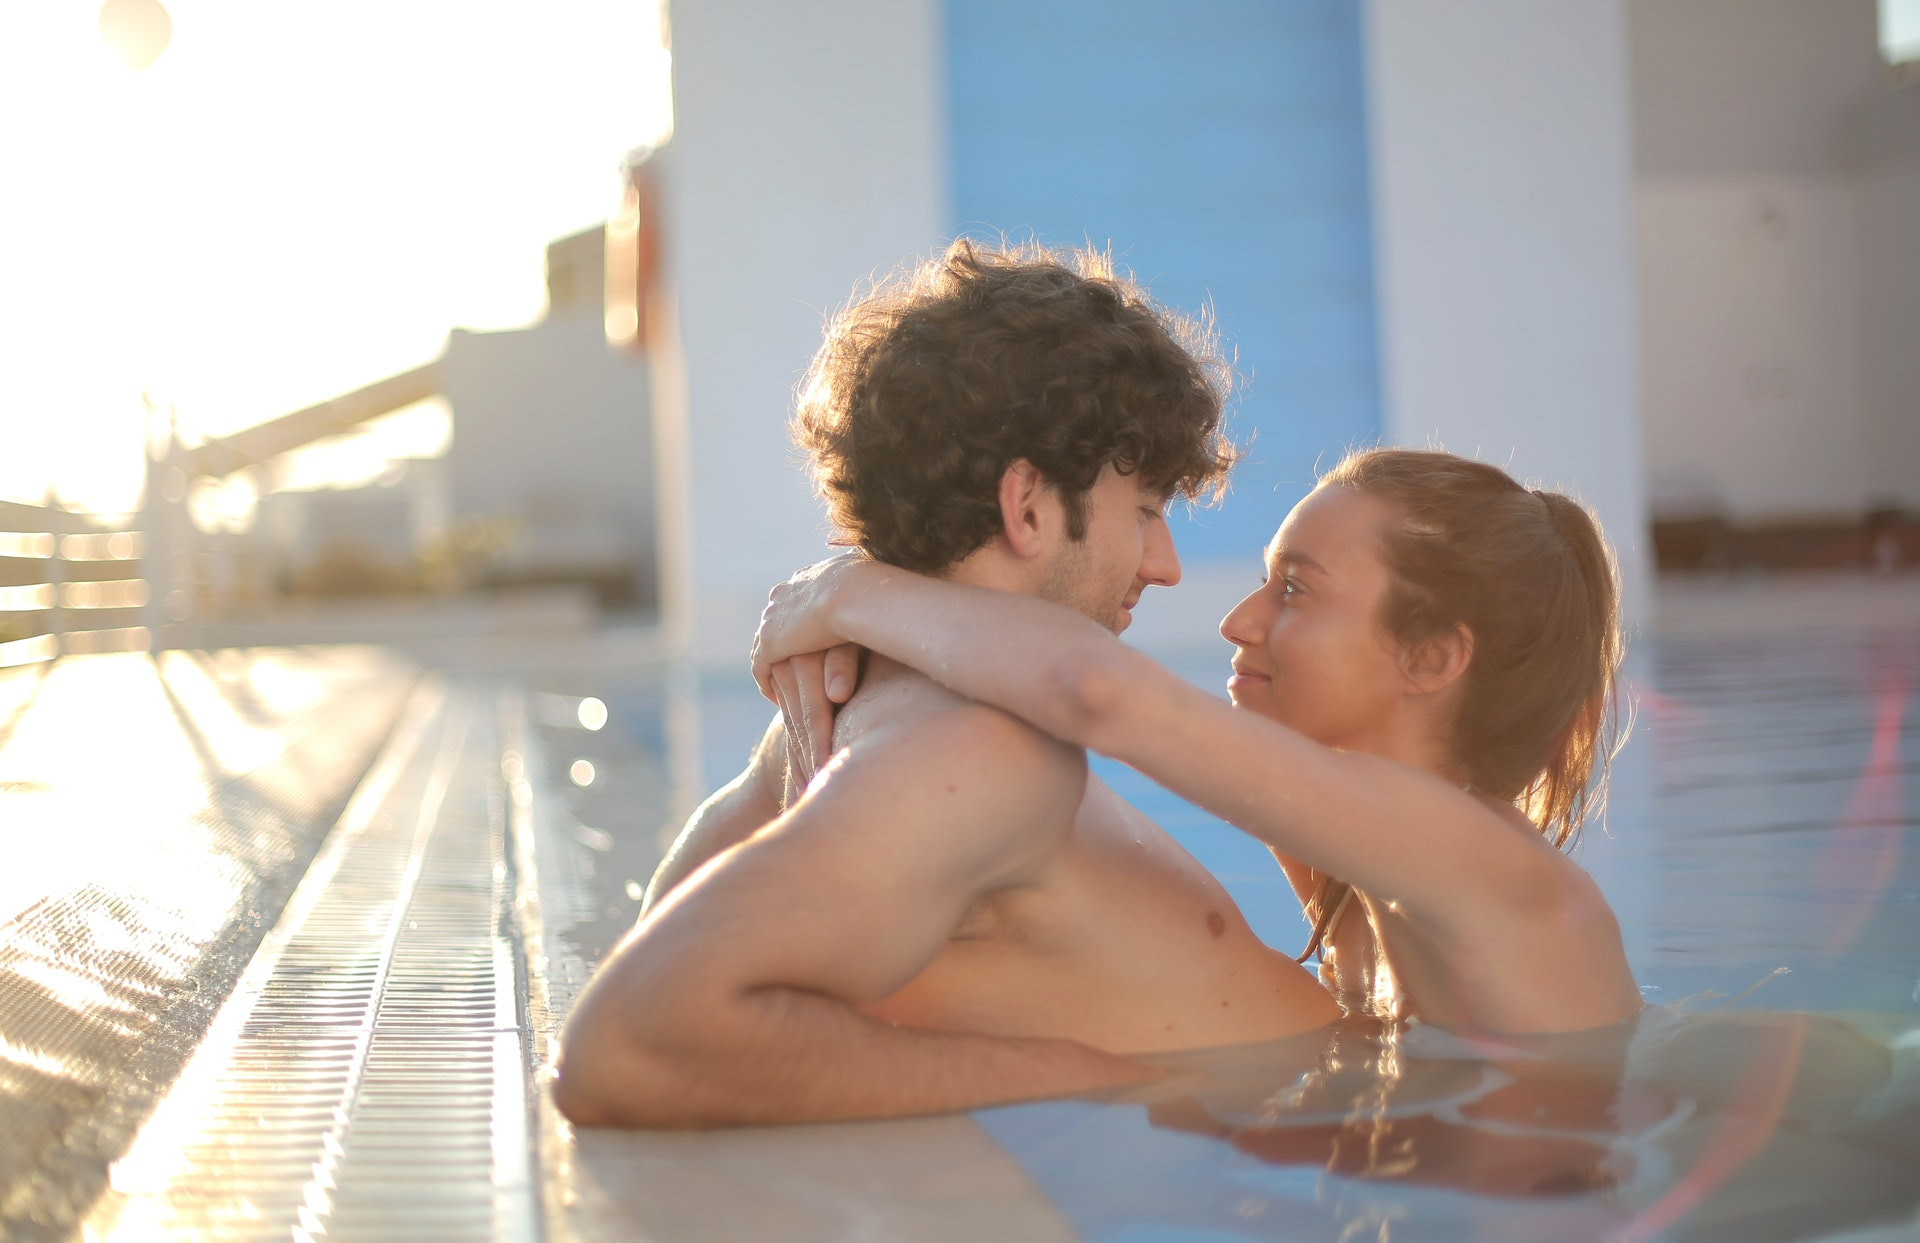 Do You Want To Make Life An Unforgettable Honeymoon?